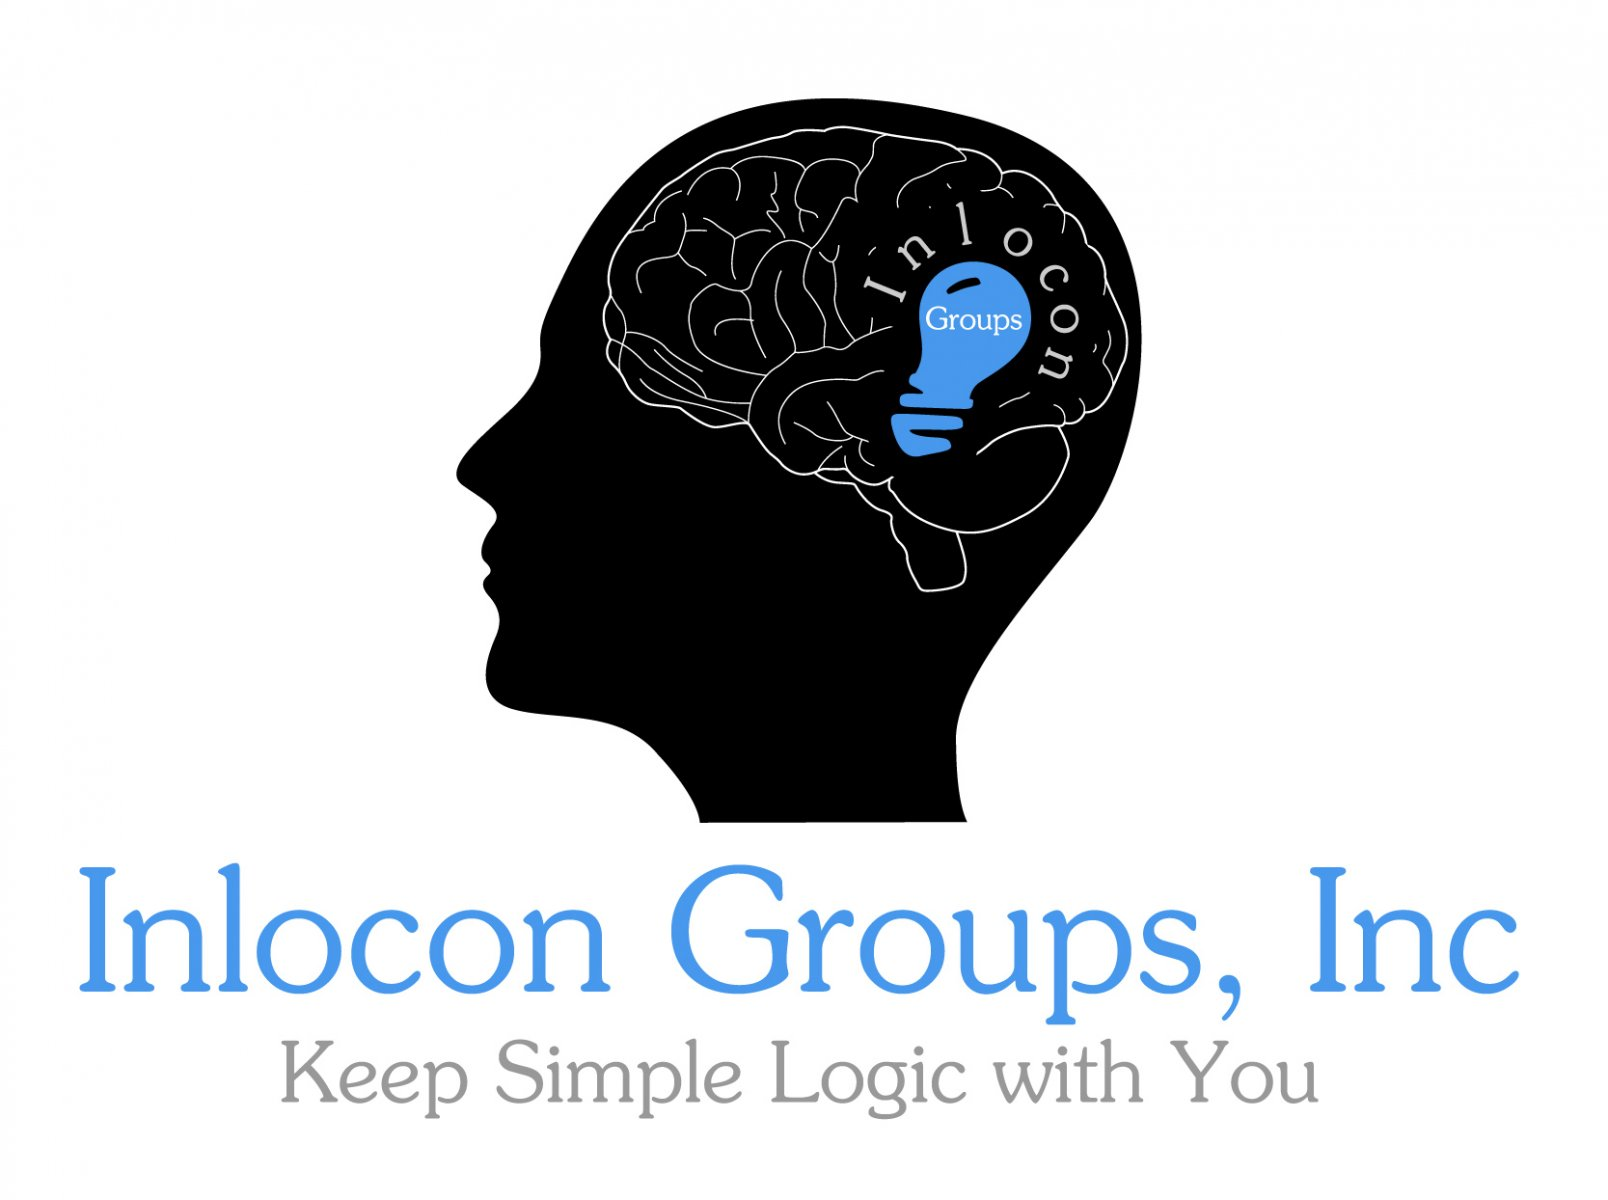 Inlocon Groups, Inc. logo